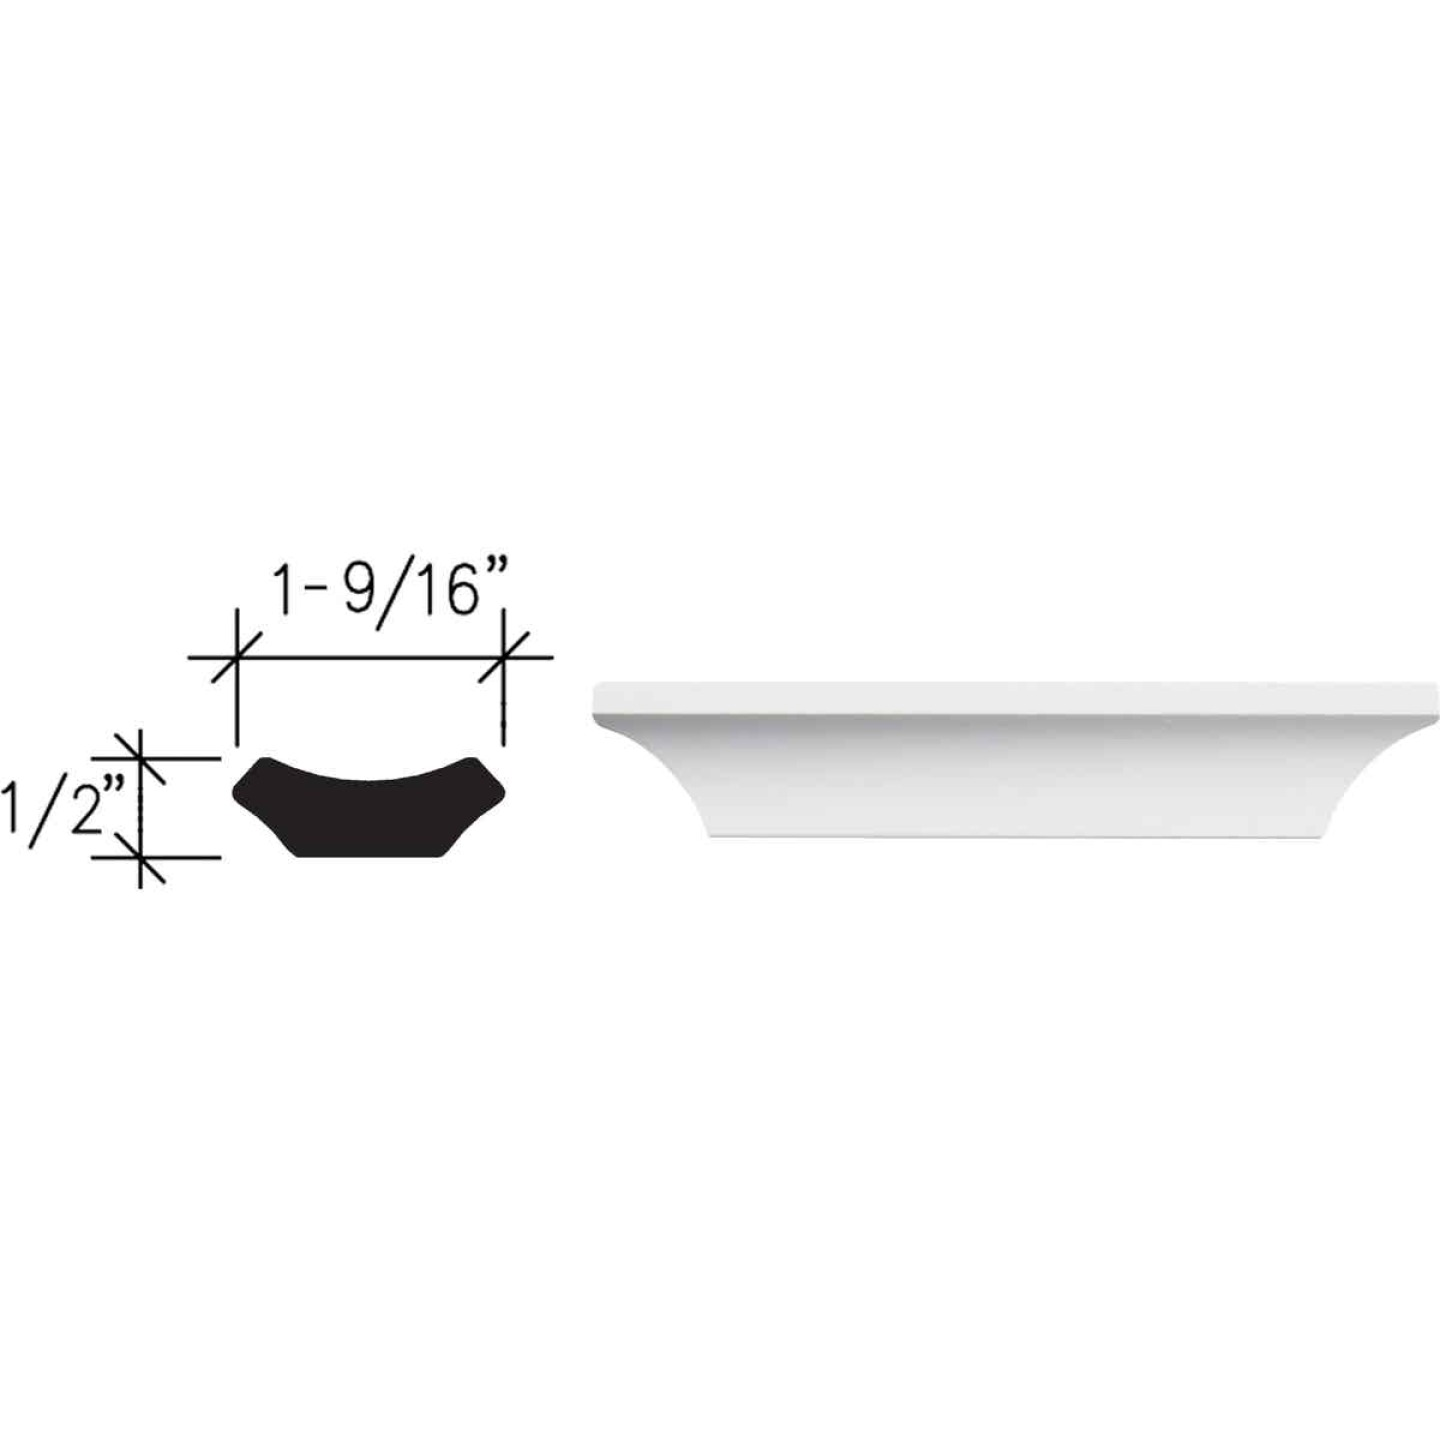 Inteplast Building Products 1/2 In. W. x 1-9/16 In. H. x 8 Ft. L. Crystal White Polystyrene Cove Molding Image 1